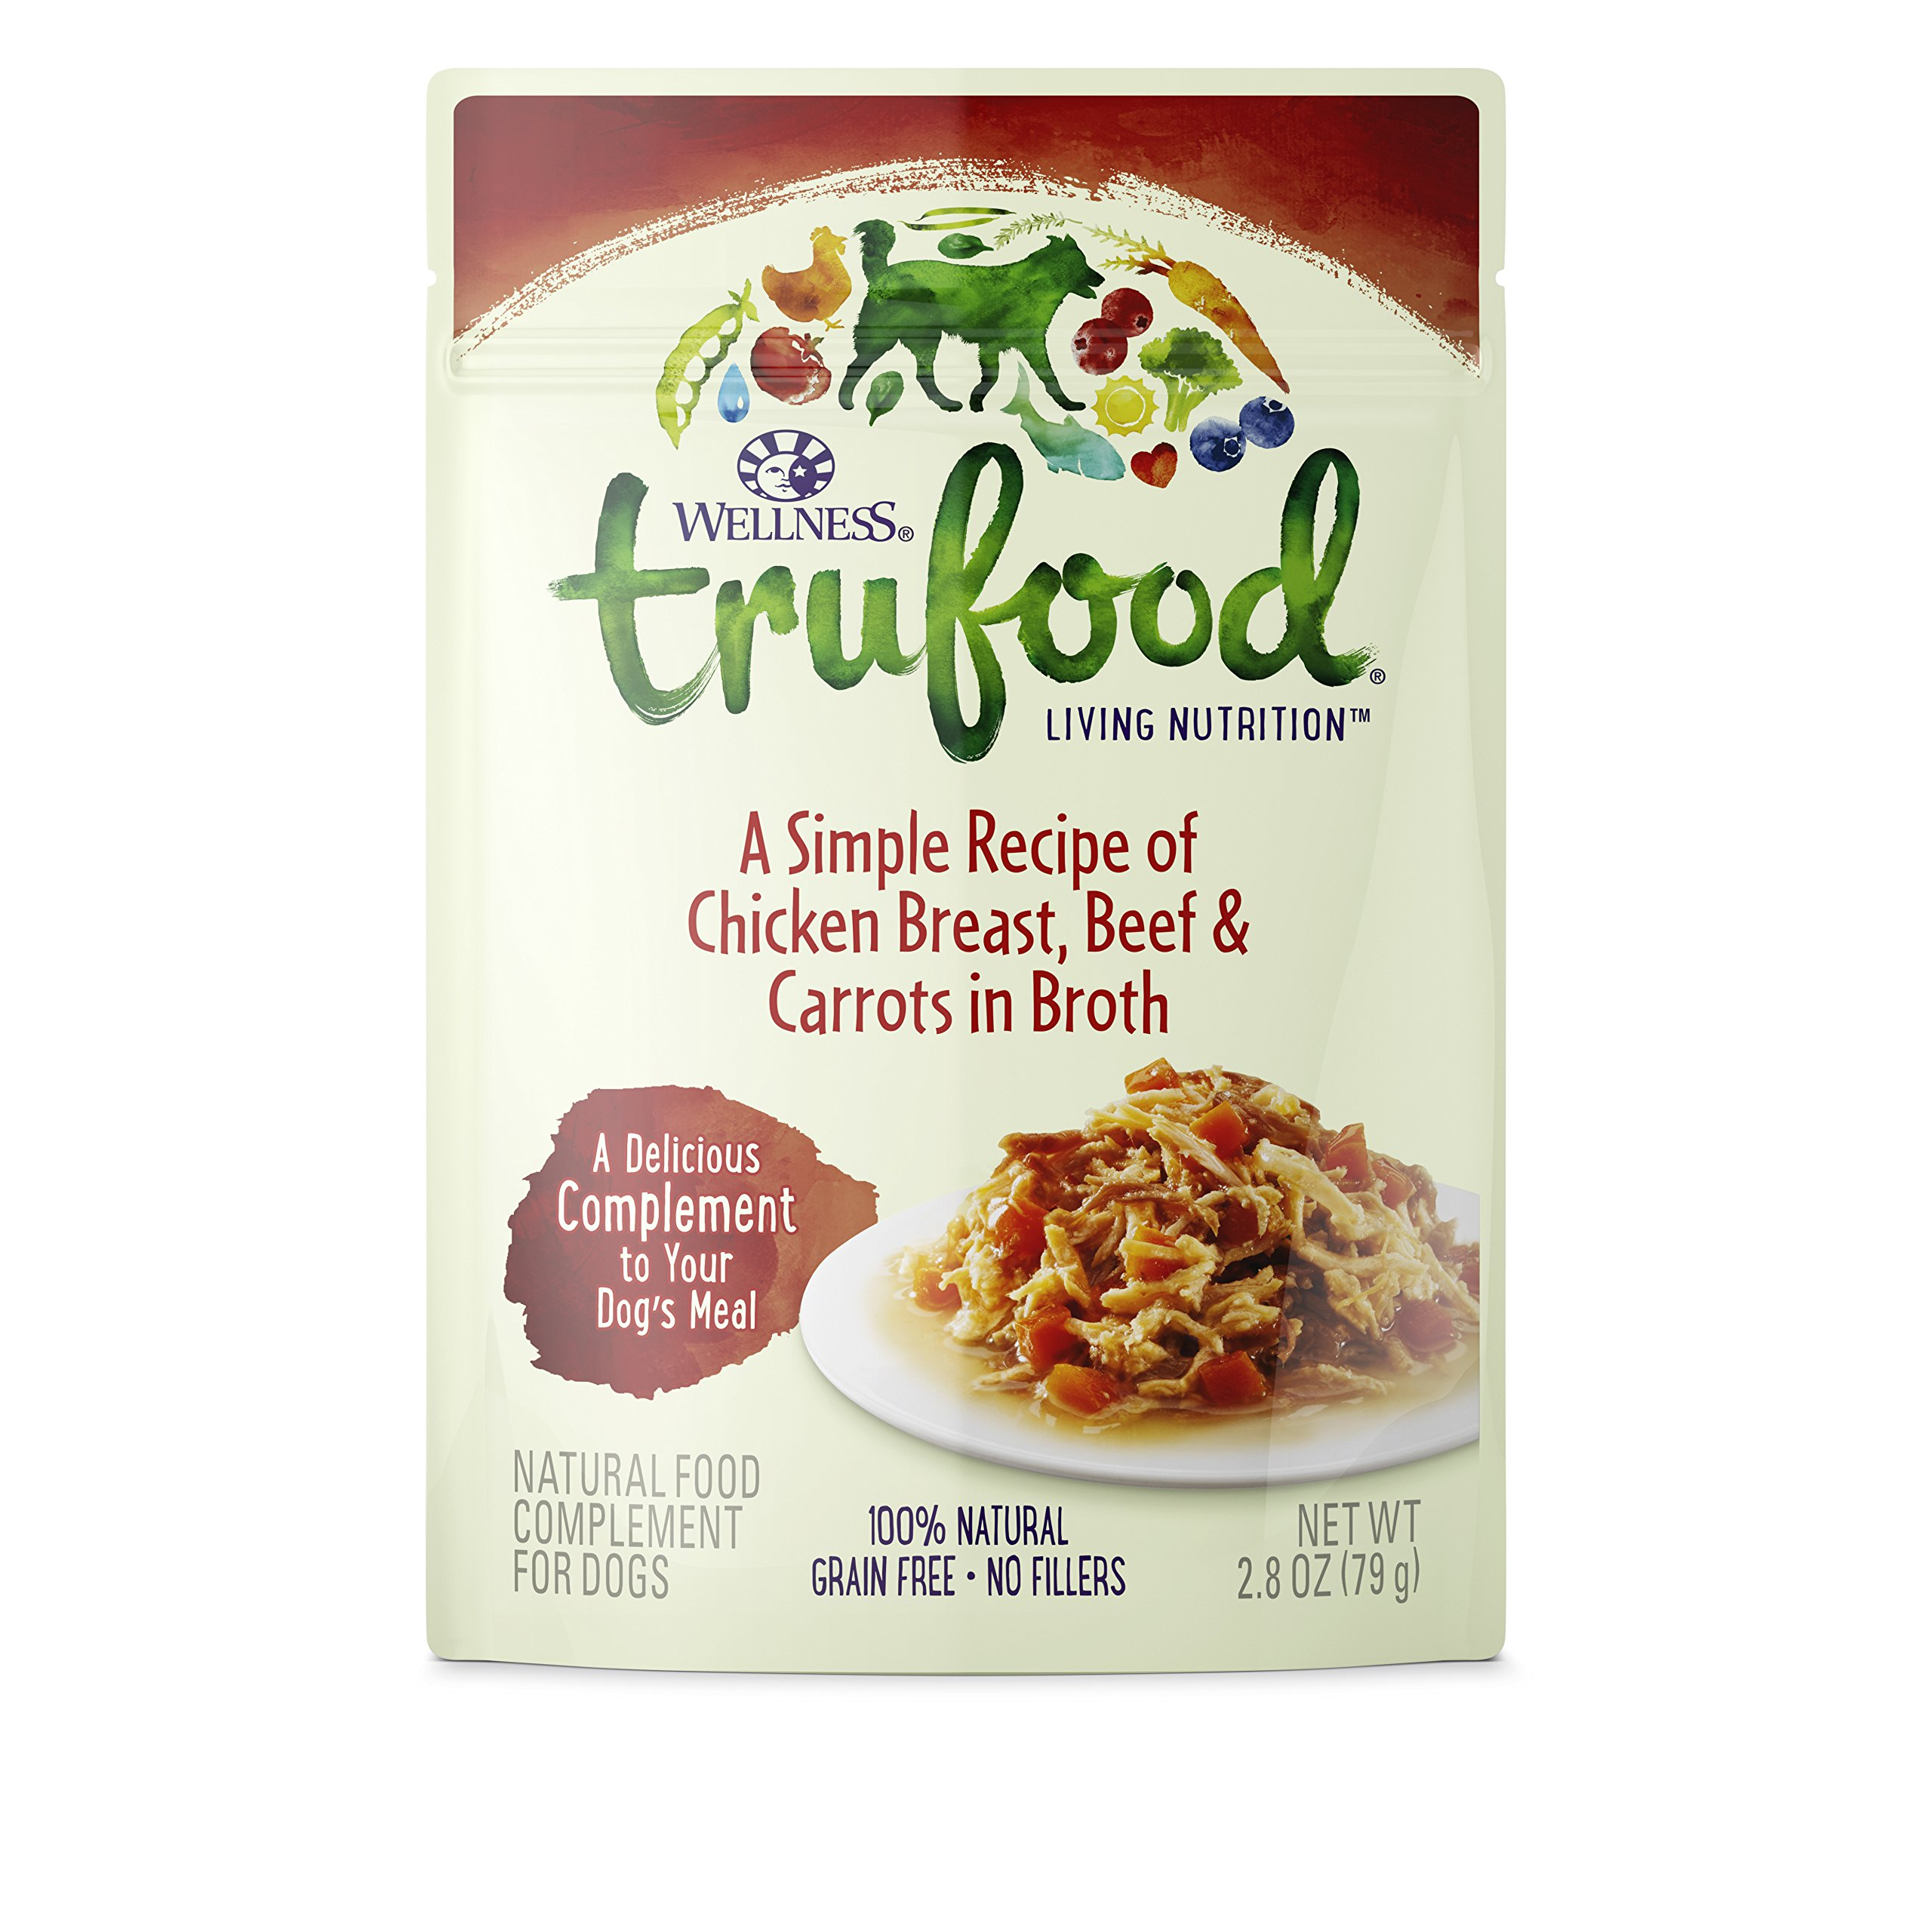 Wellness TruFood Complements Natural Grain Free Wet Raw Dog Food, Chicken, Beef & Carrots, 2.8-Ounce Pouch (Pack of 24)